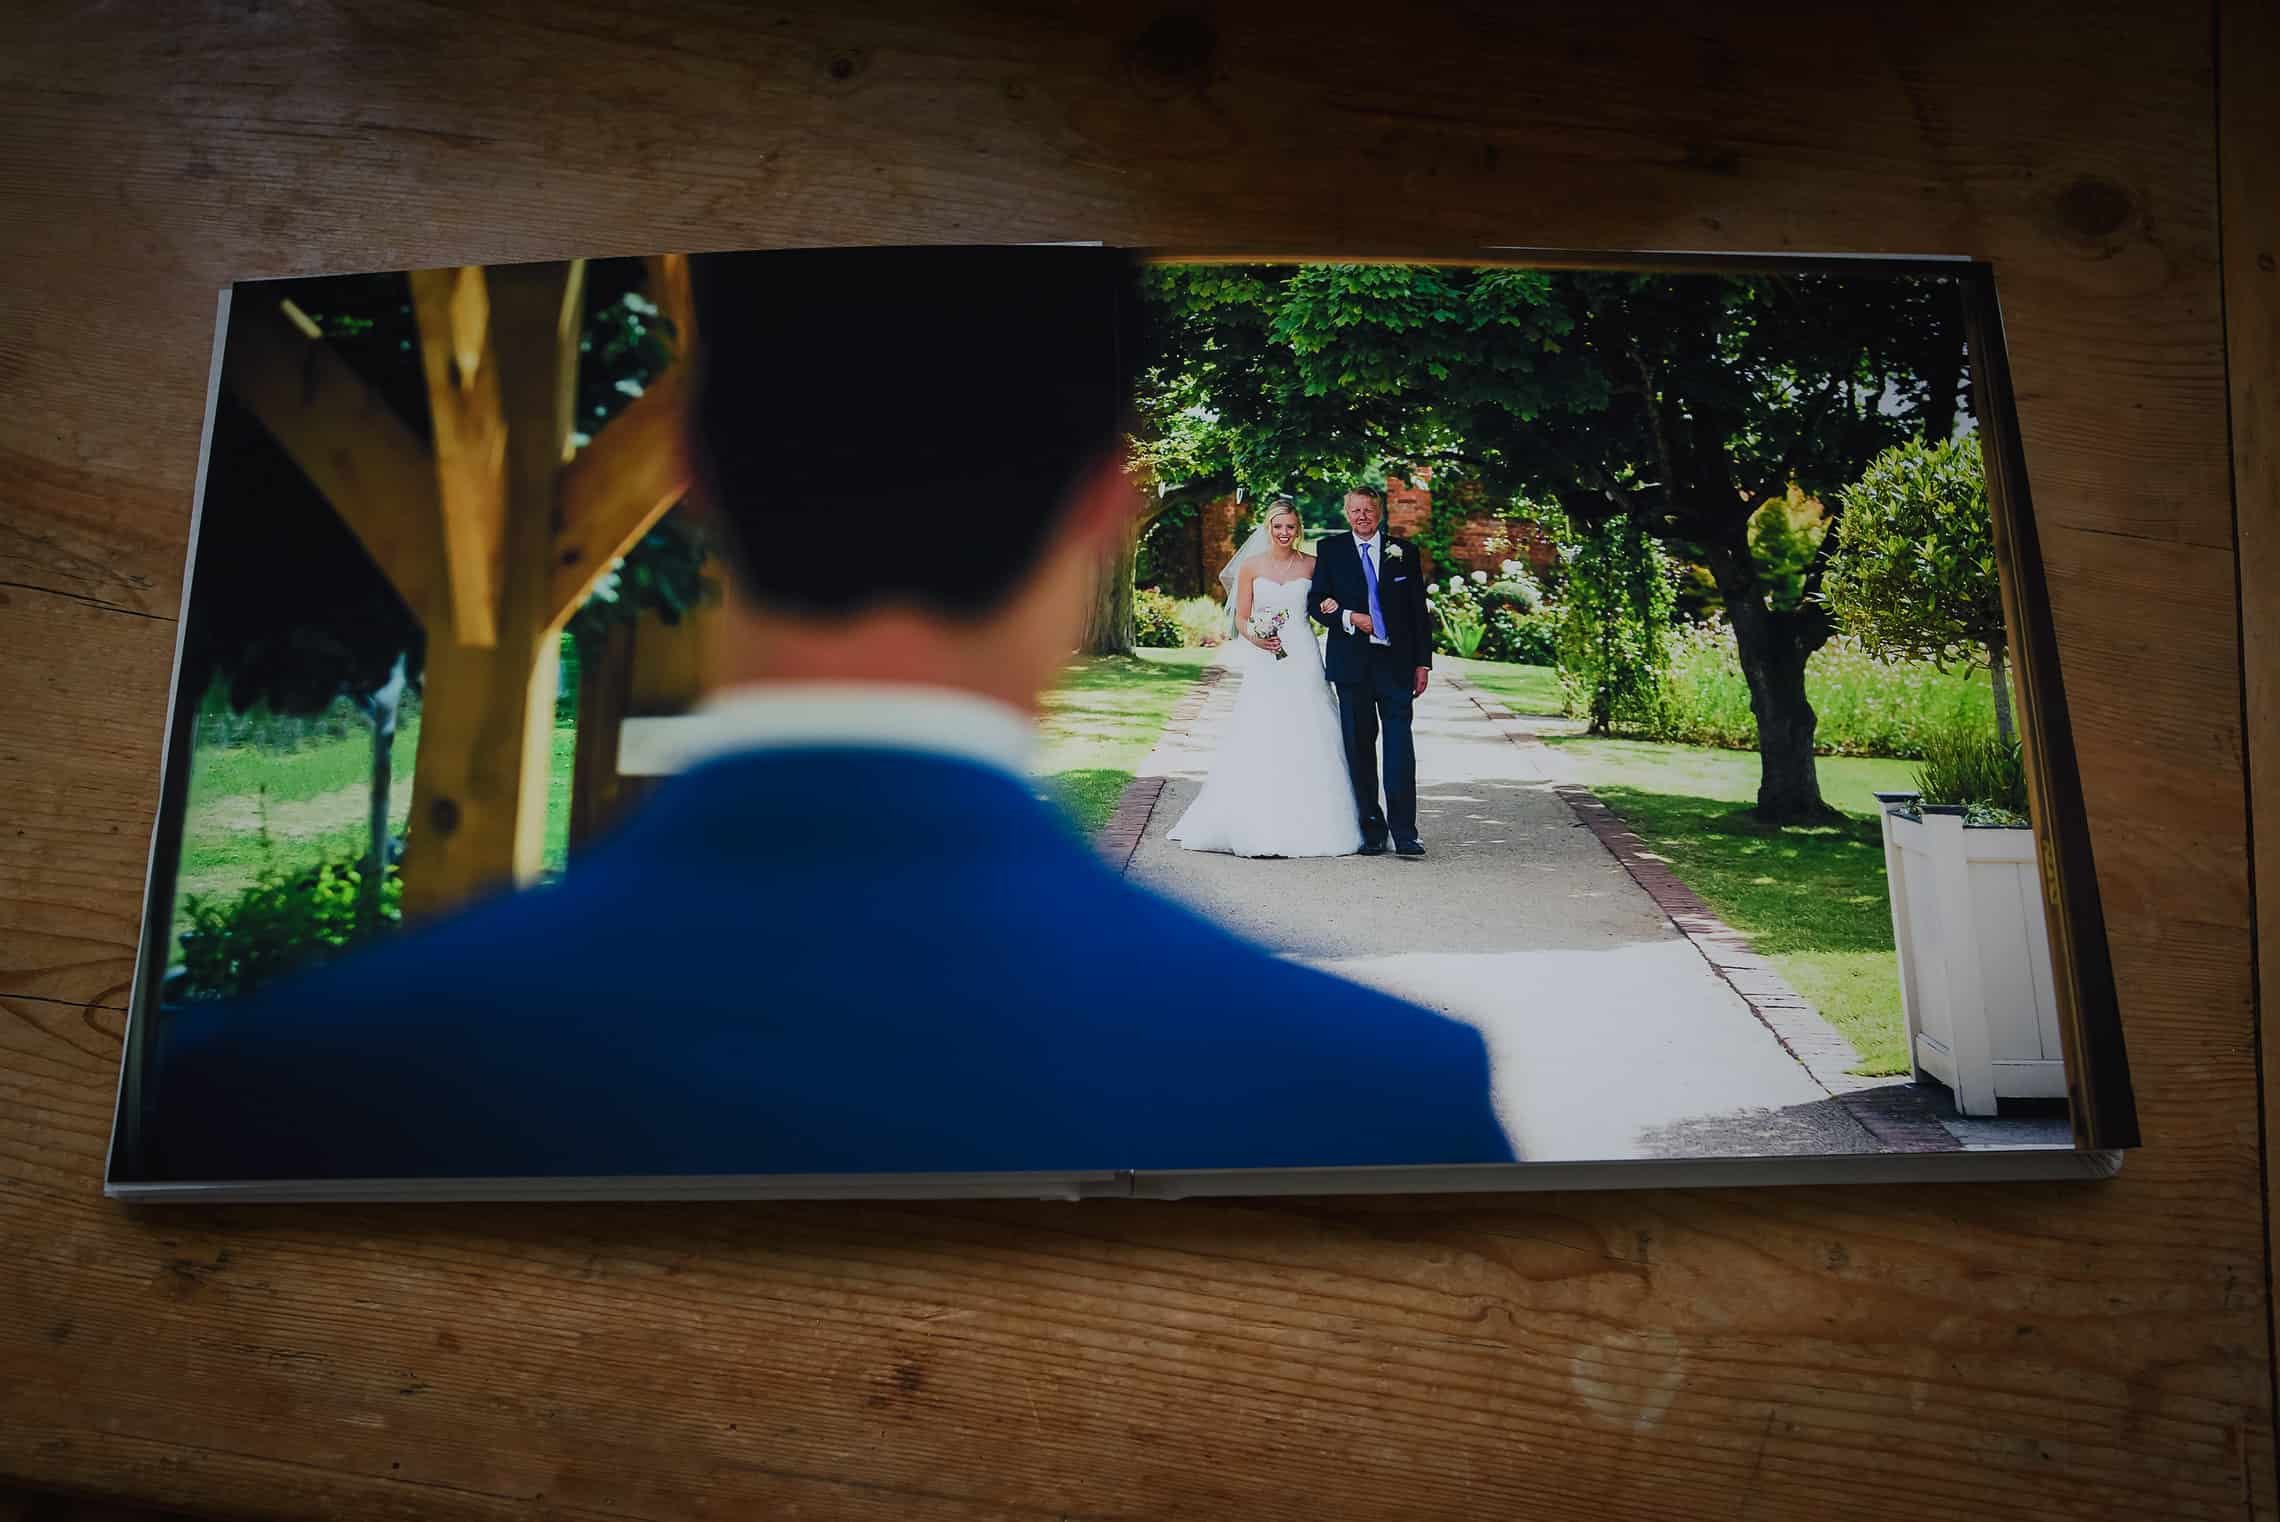 gaynes_park_wedding_lm_justin_bailey_photography_005b